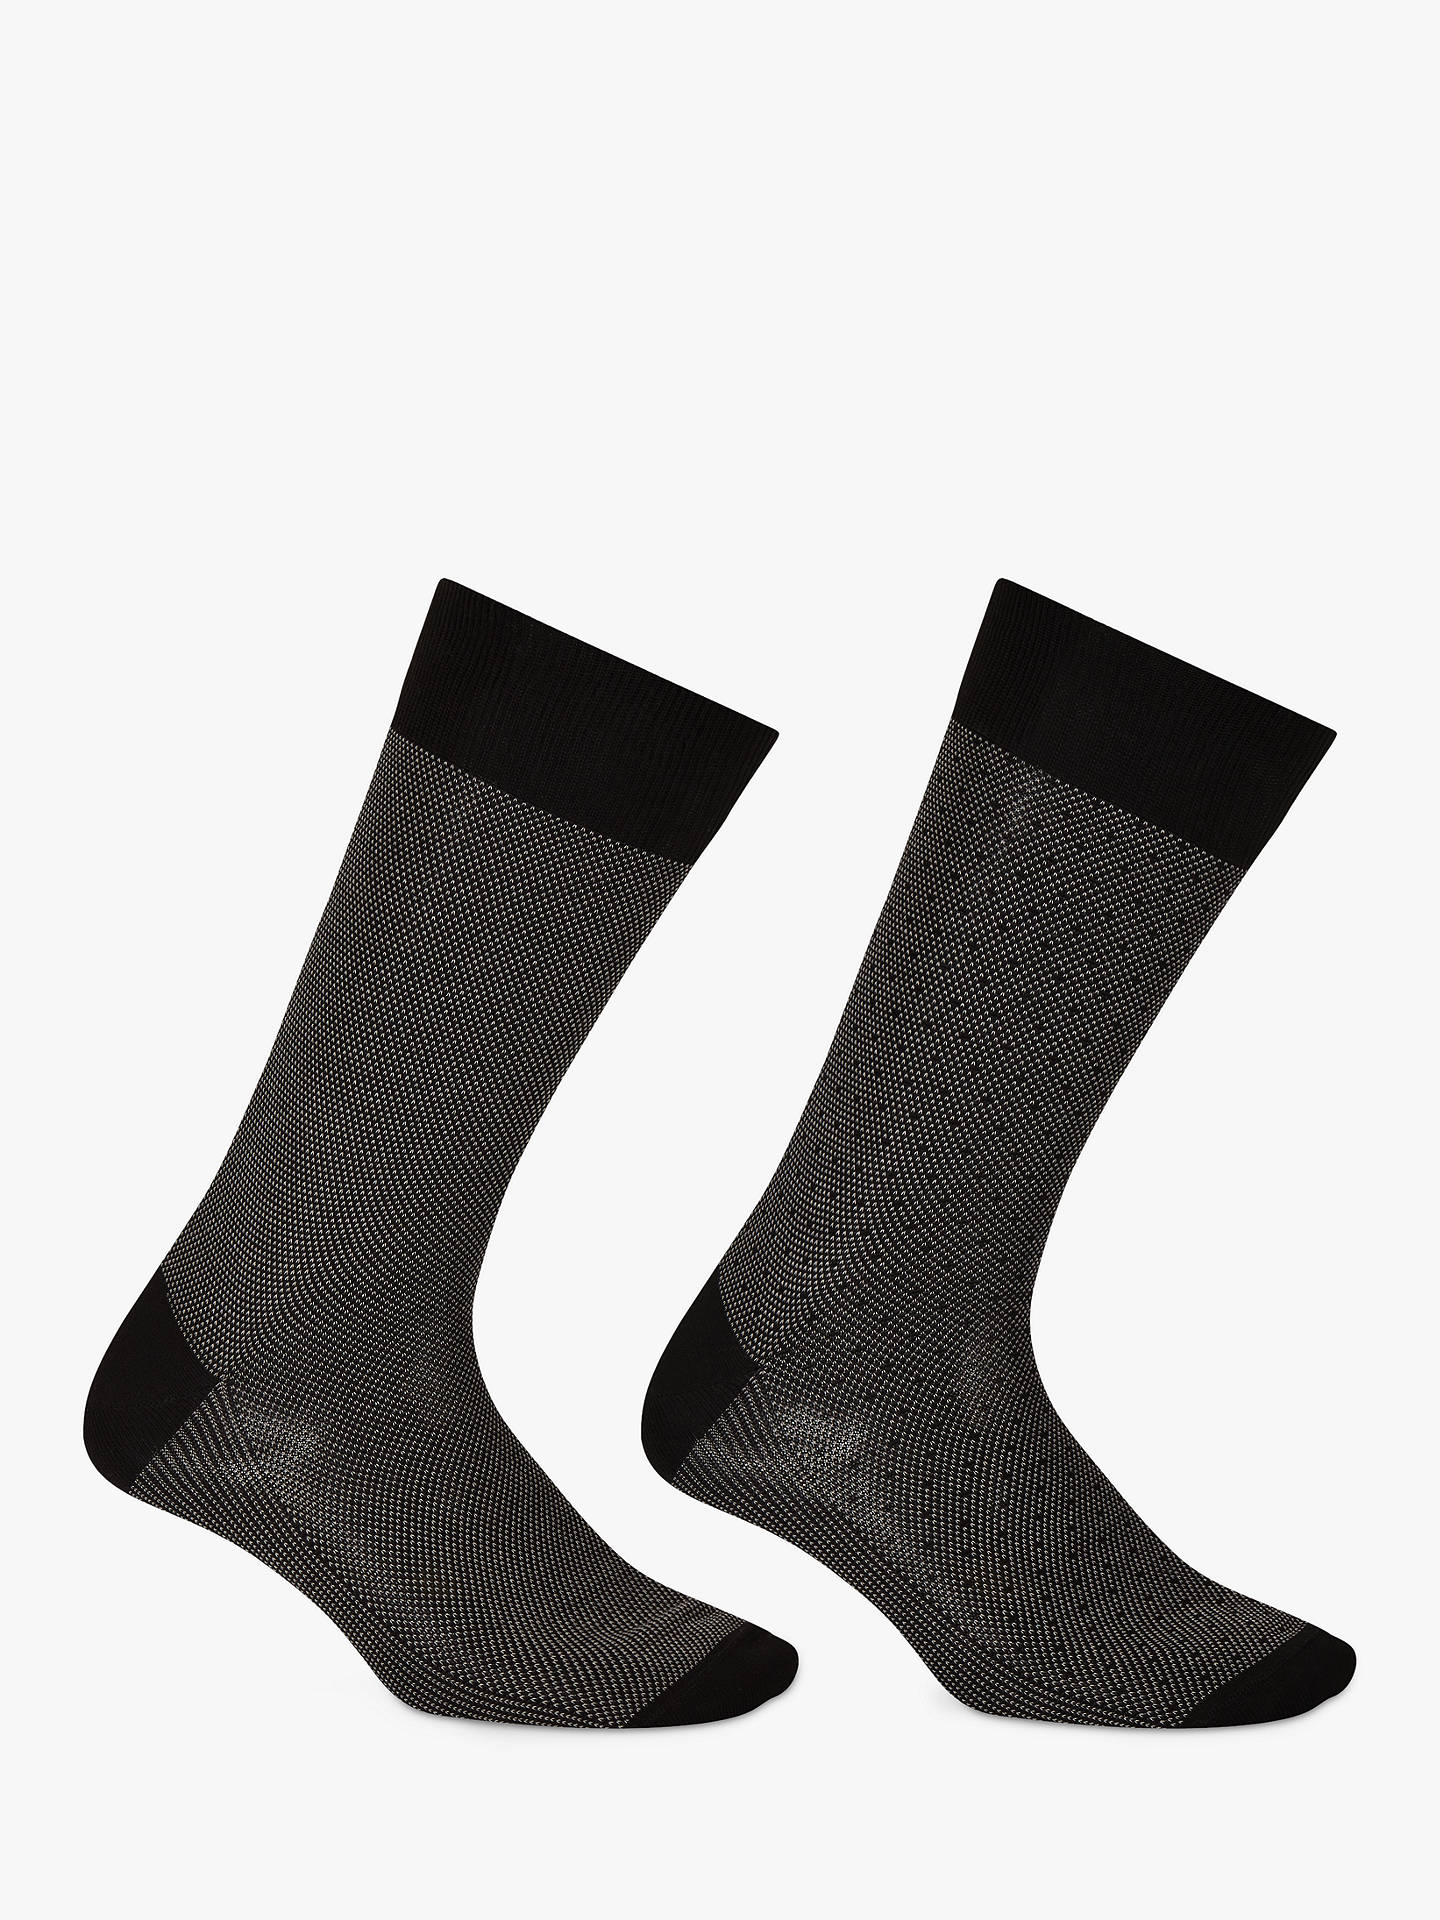 BuyJohn Lewis & Partners Birdseye Egyptian Cotton Socks, Pack of 2, Black, S Online at johnlewis.com